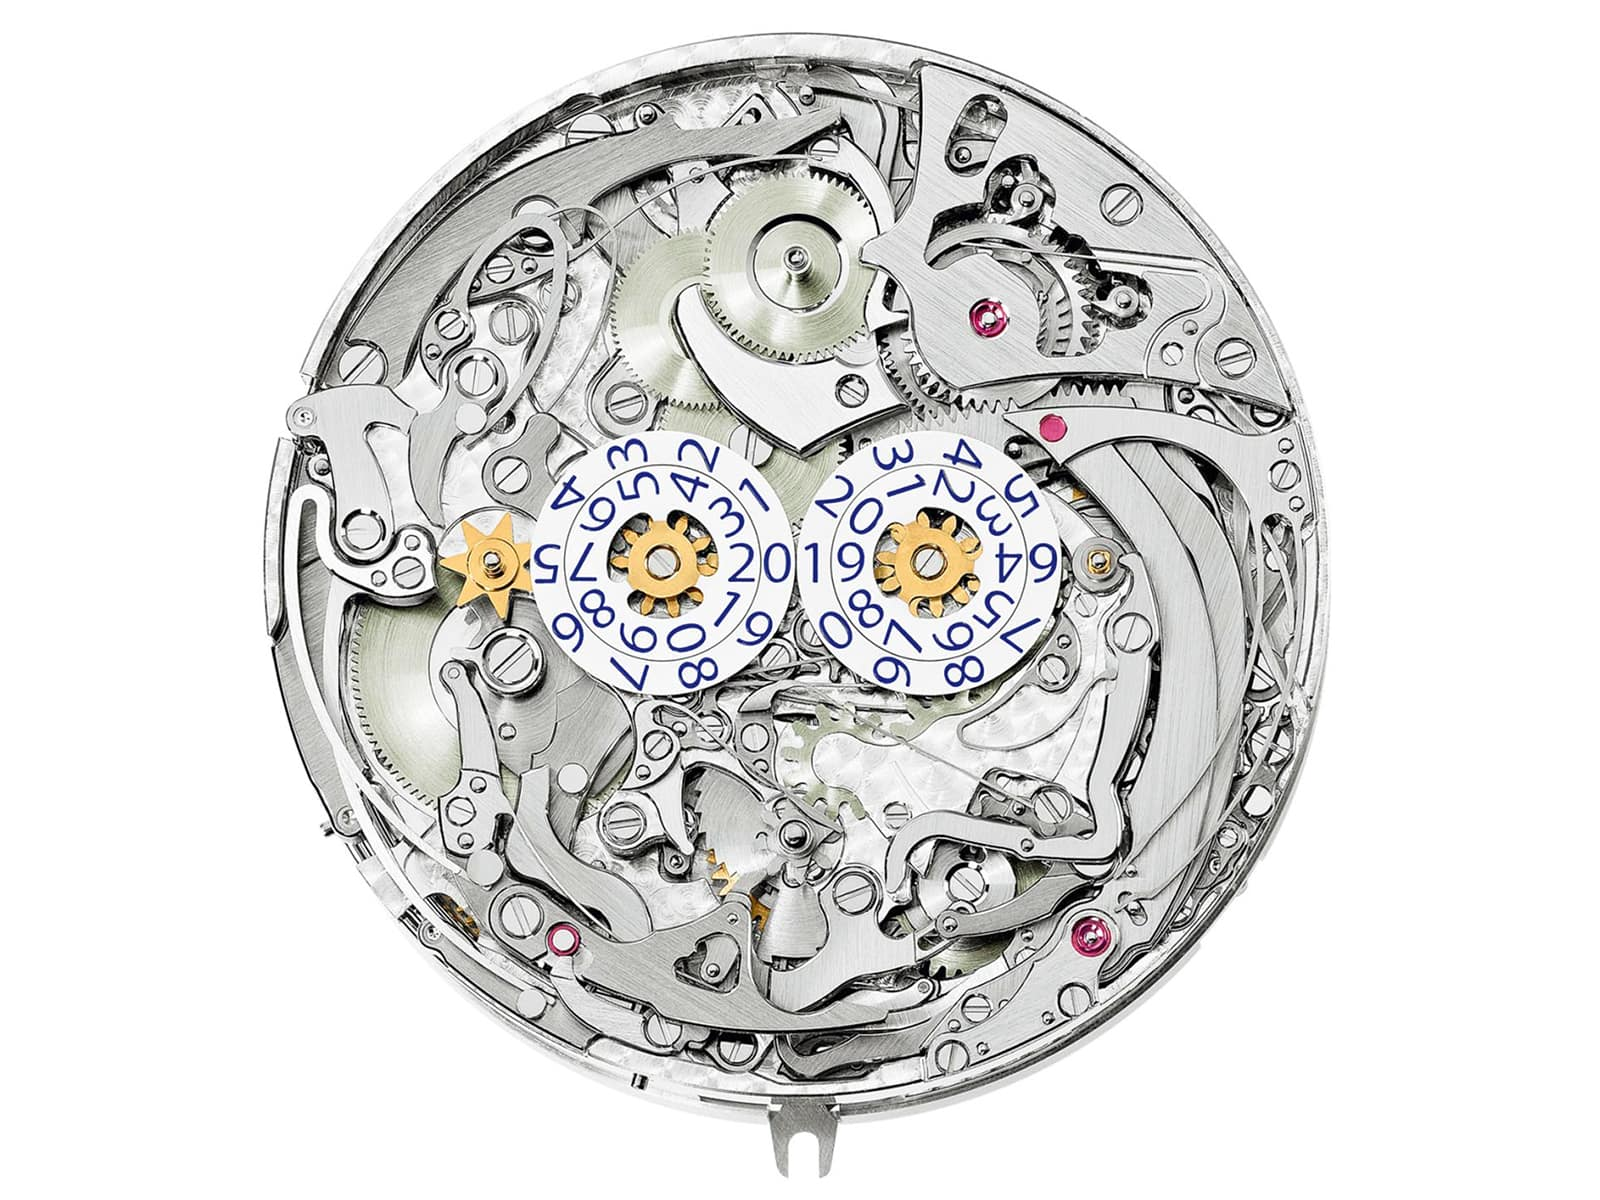 6300a-010-patek-philippe-6300a-steel-grandmaster-chime-only-watch-2019-7.jpg